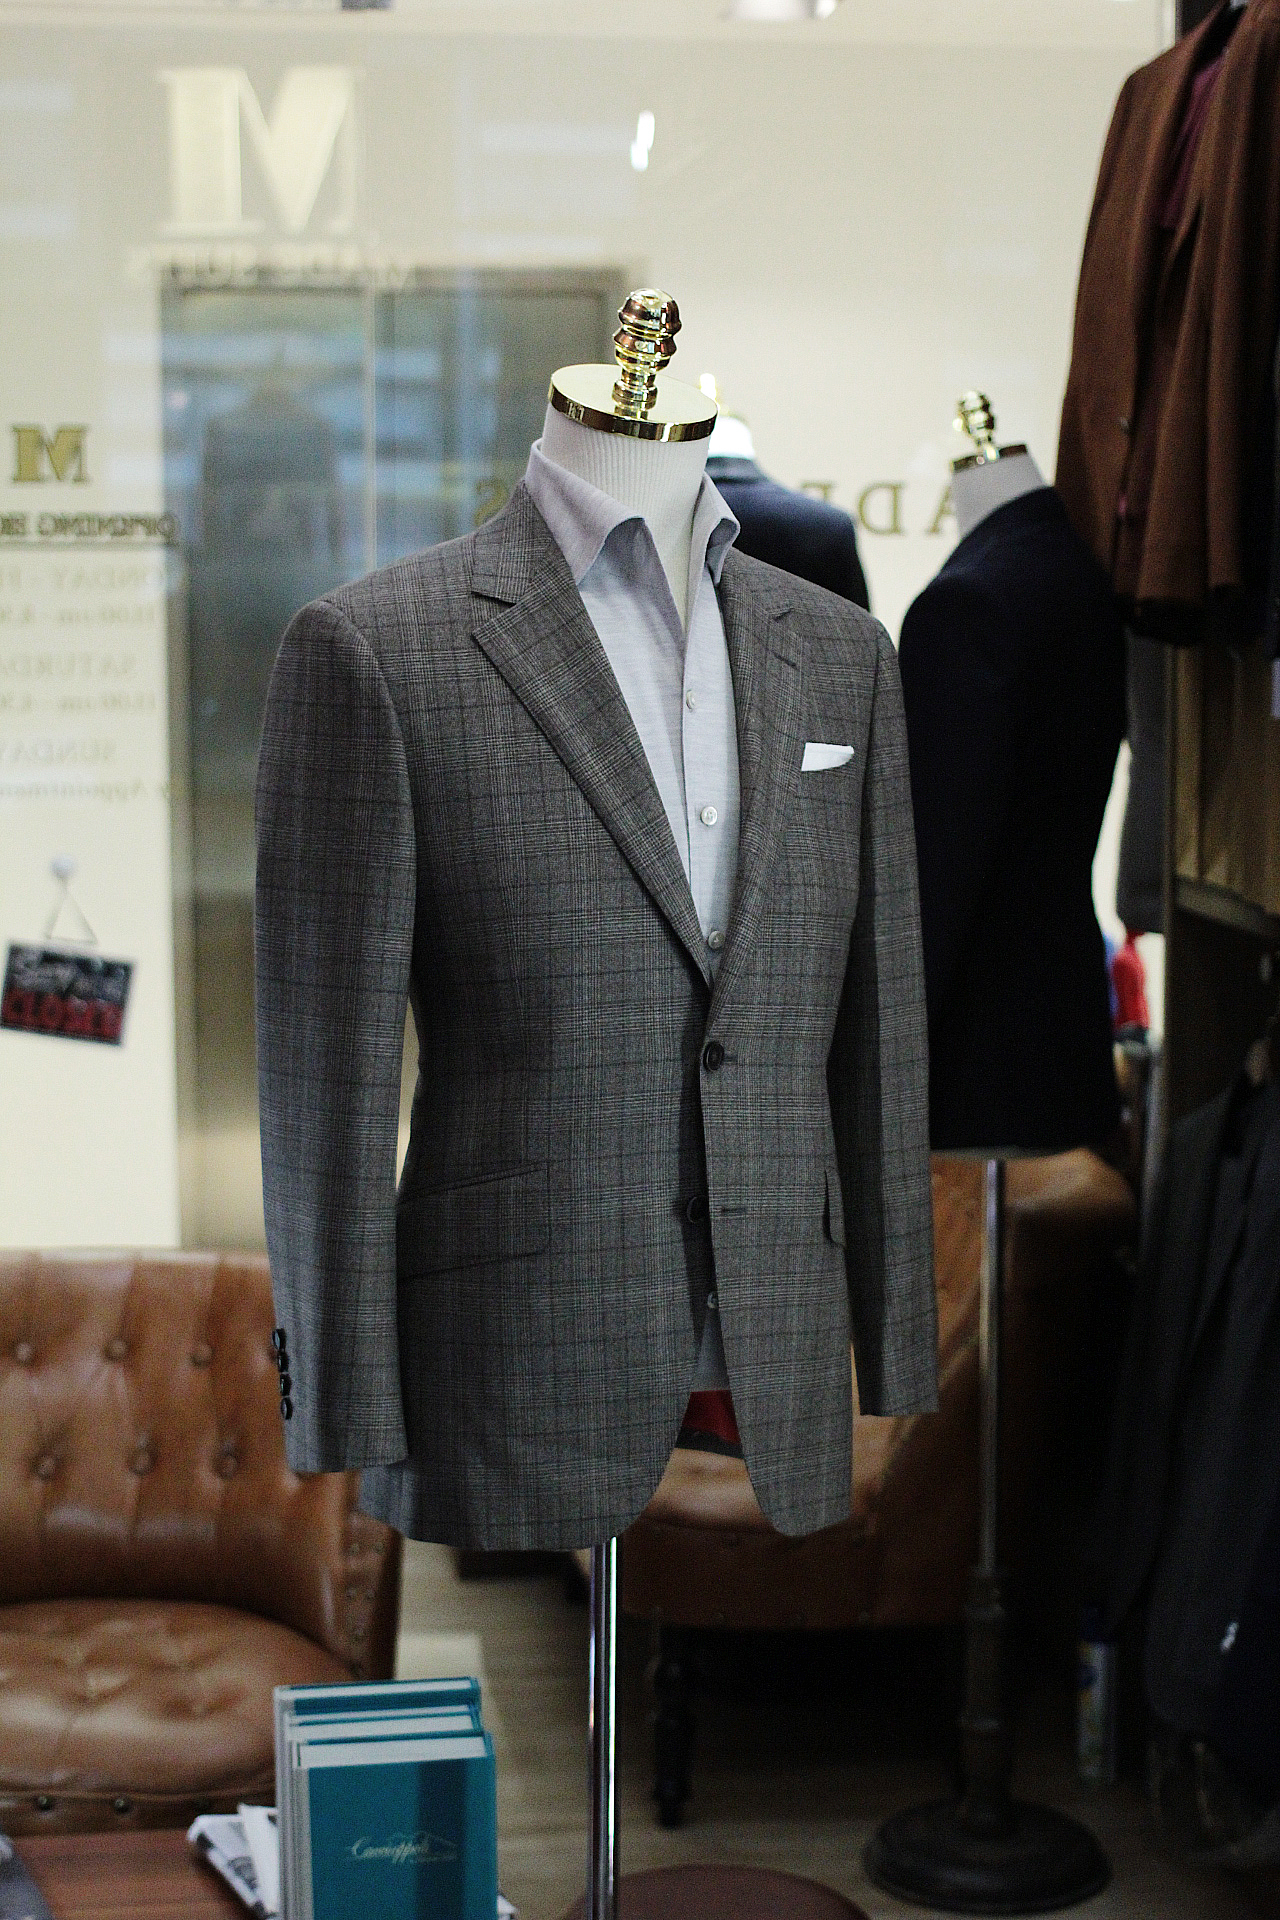 brooklyn   Tailor Made Suits   Made Suits Singapore   Fratelli Tallia Di Delfino suit   Single Breasted Suit Side.JPG